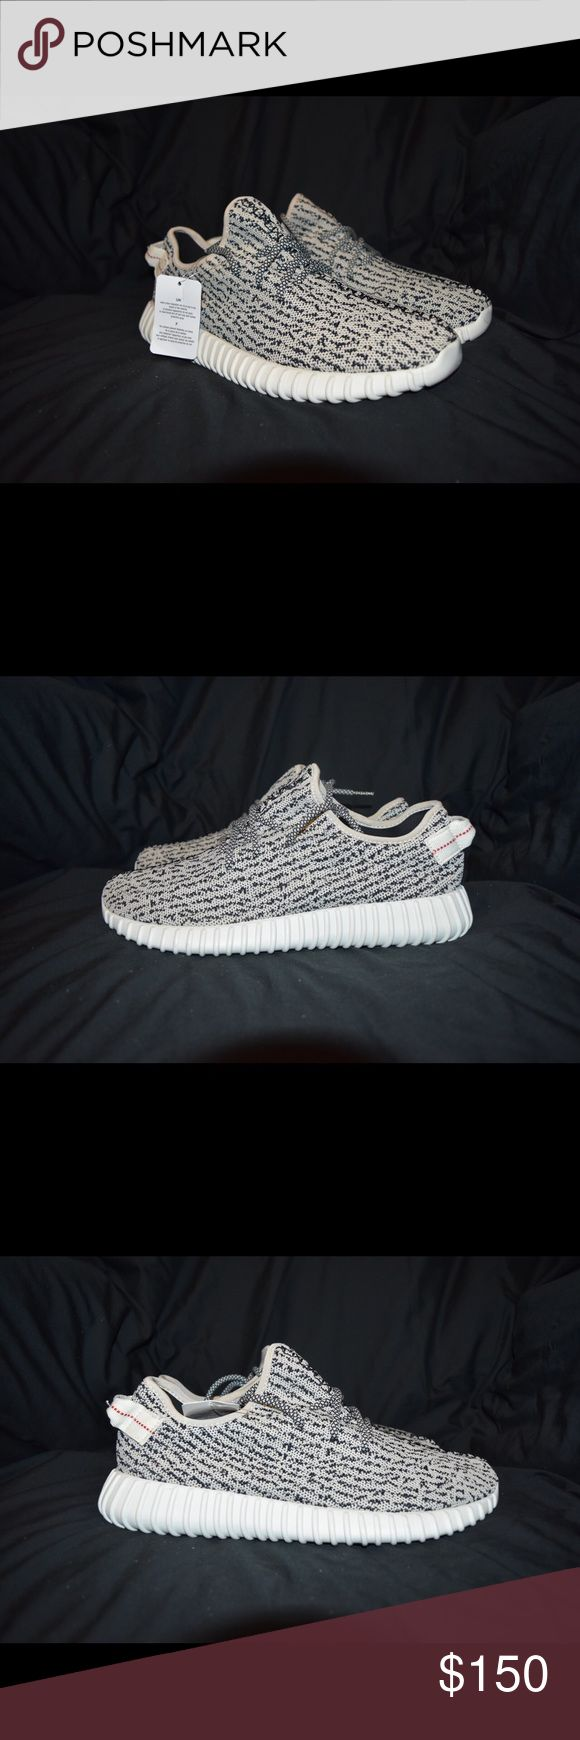 c7cc24ab24463 ... promo code video walkthrough yeezy boost 350 today for sale i have the  ua yeezy boost